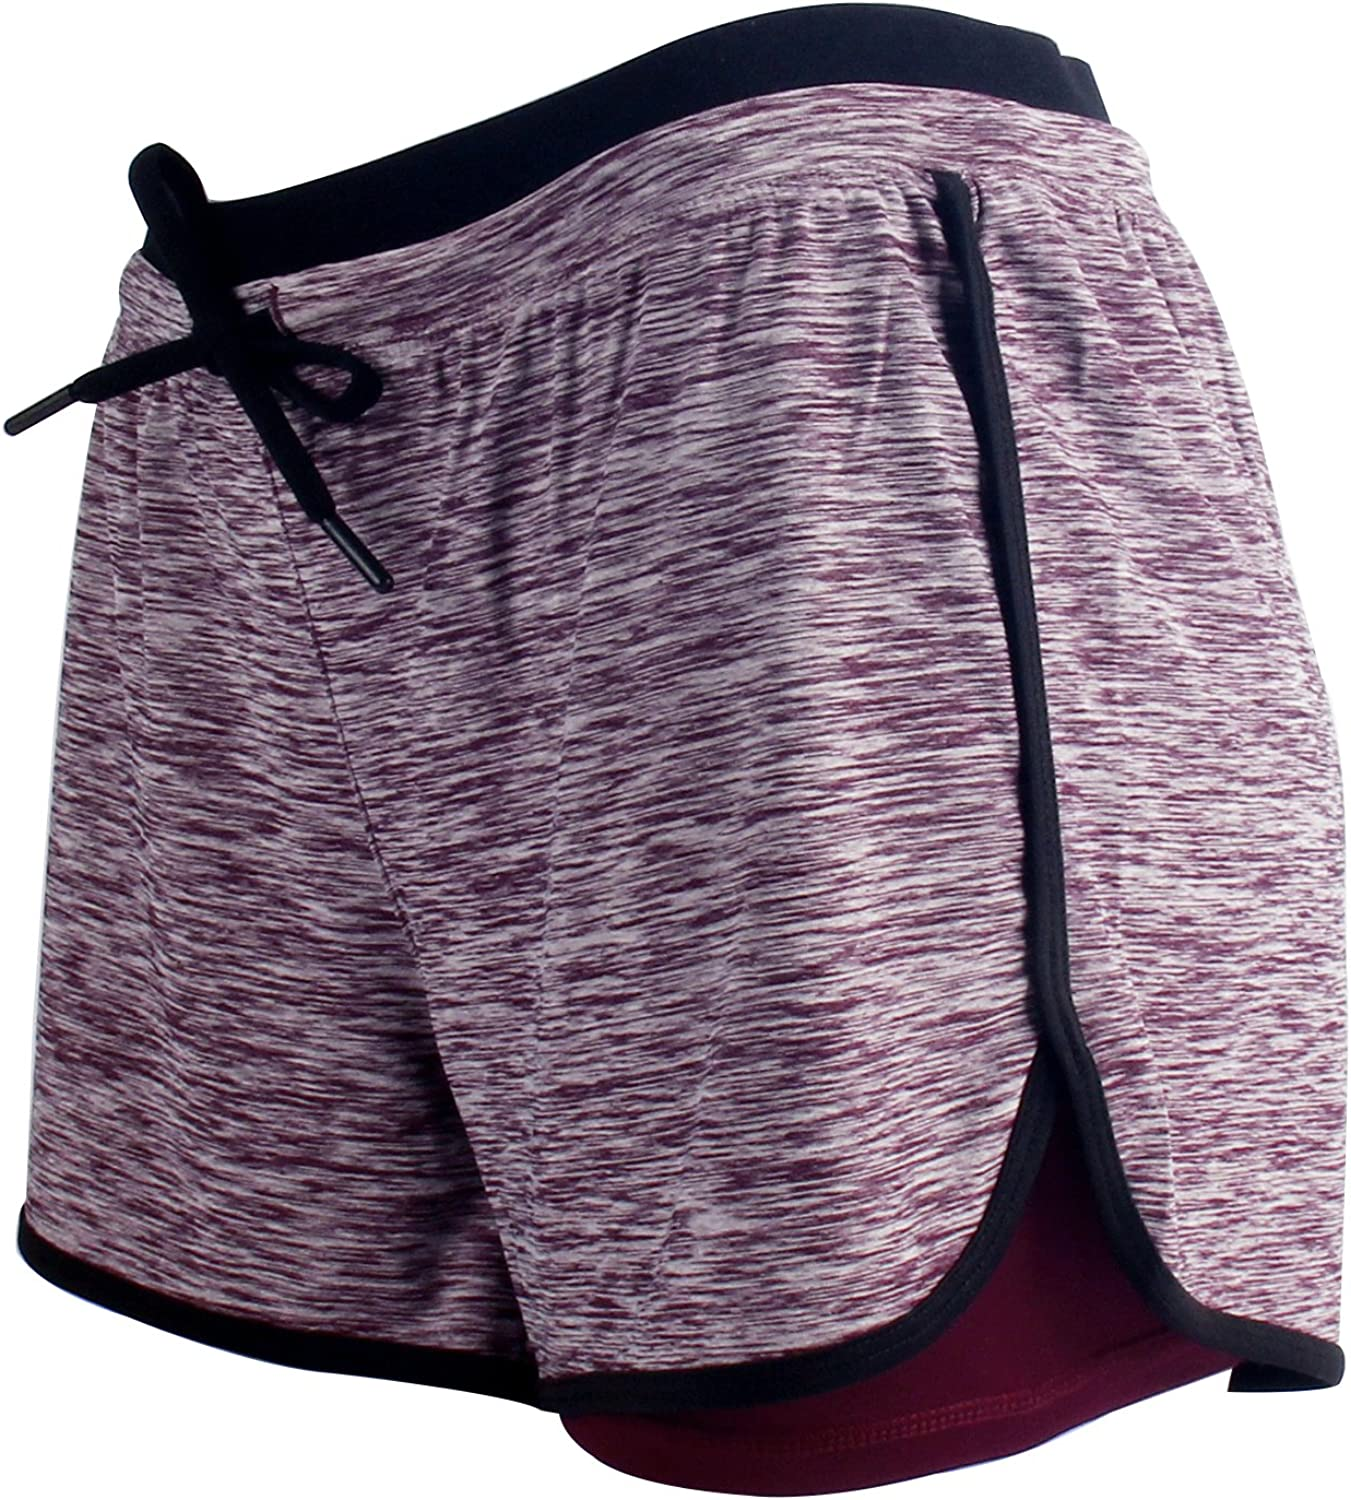 RIBOOM Women Workout Fitness Running Shorts Double Layer Active Yoga Gym Sport Shorts